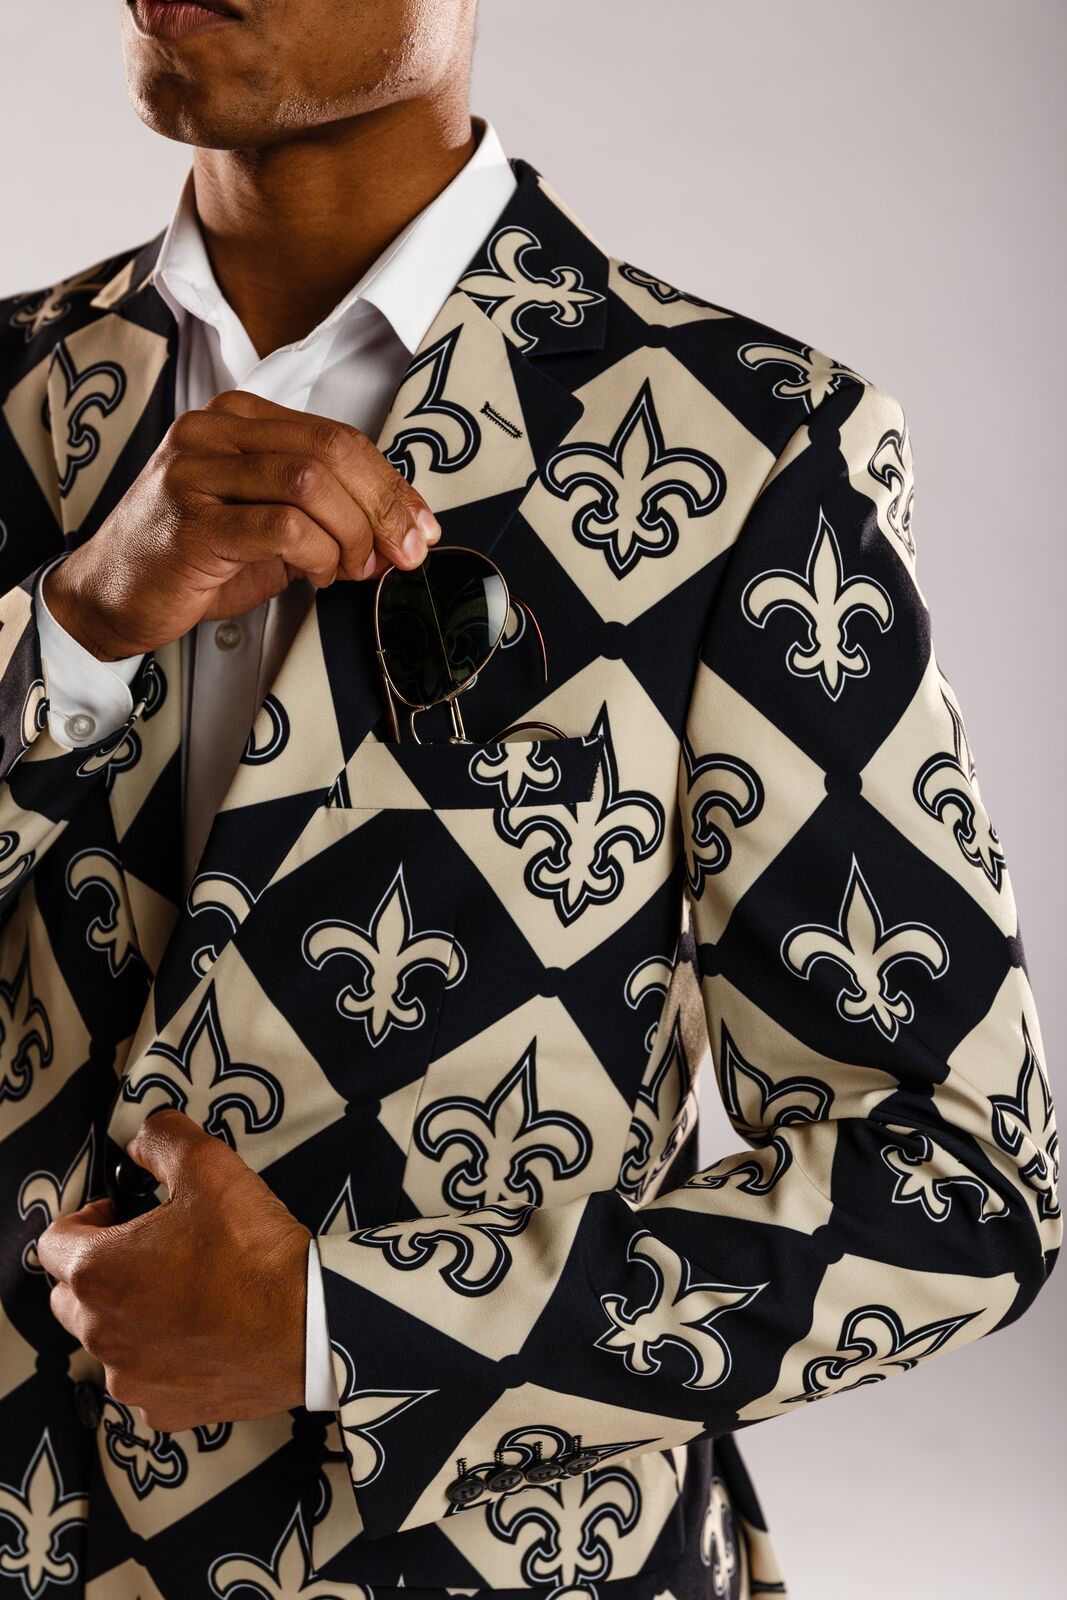 The New Orleans Saints | NFL Gameday Blazer